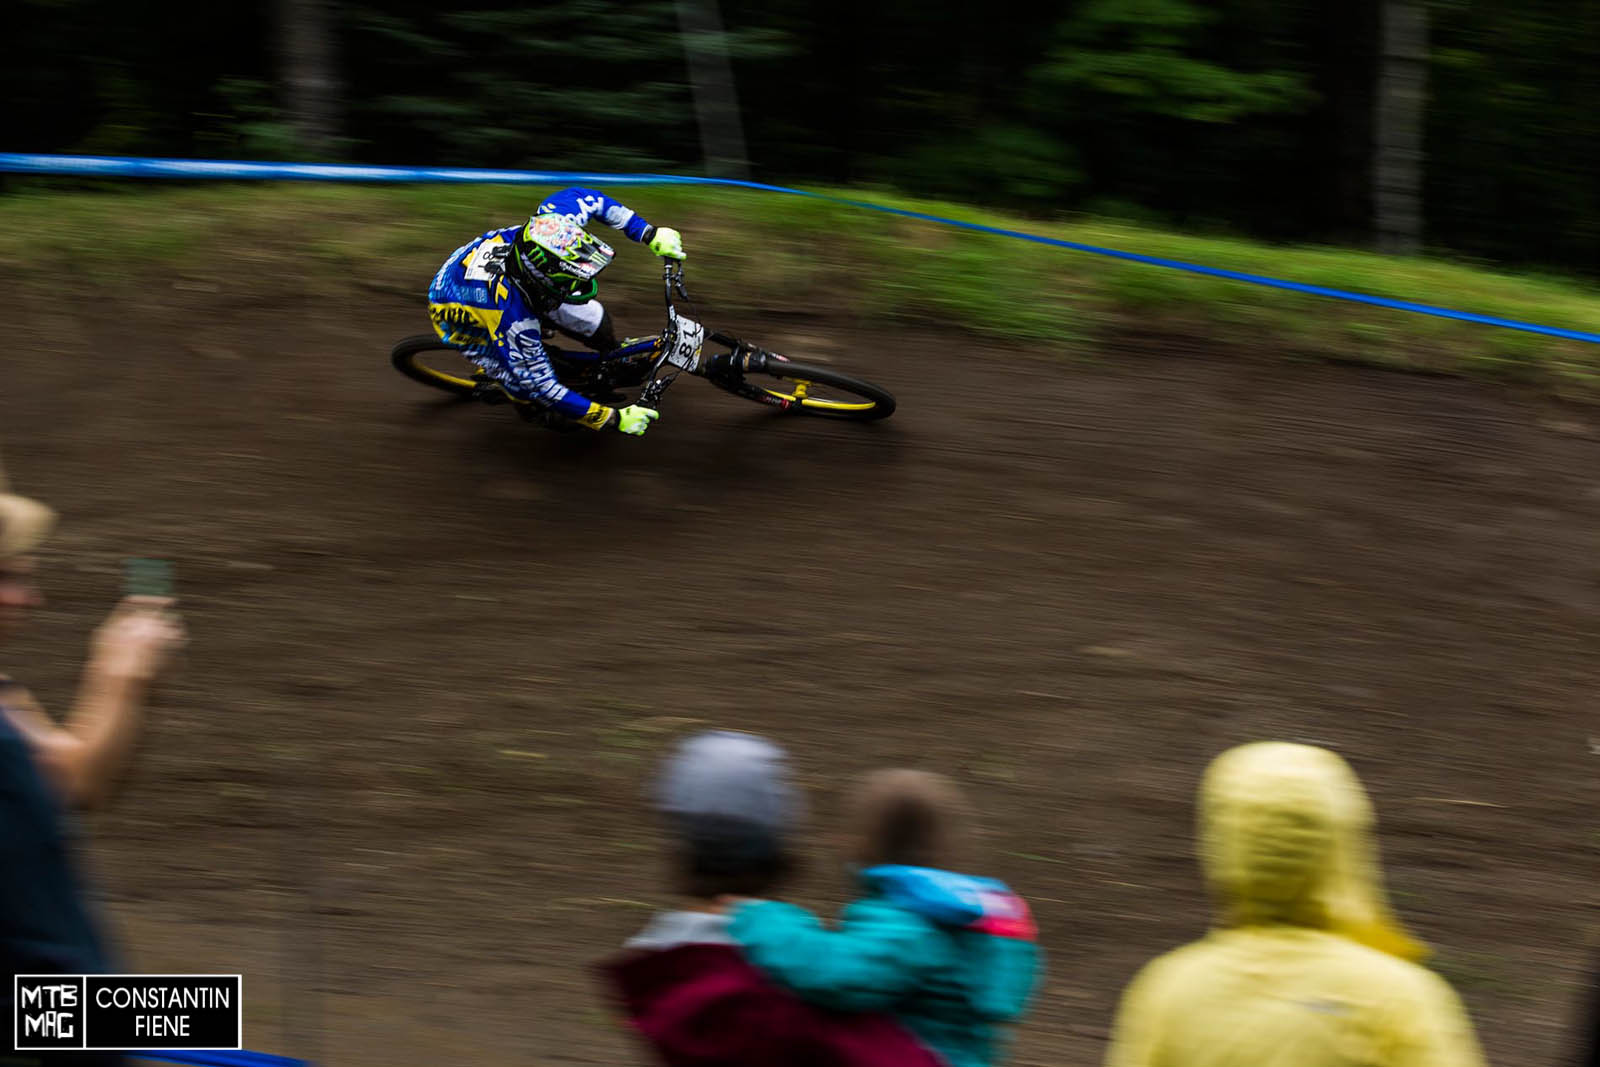 Sam Hill taking it easy and finding his pace.